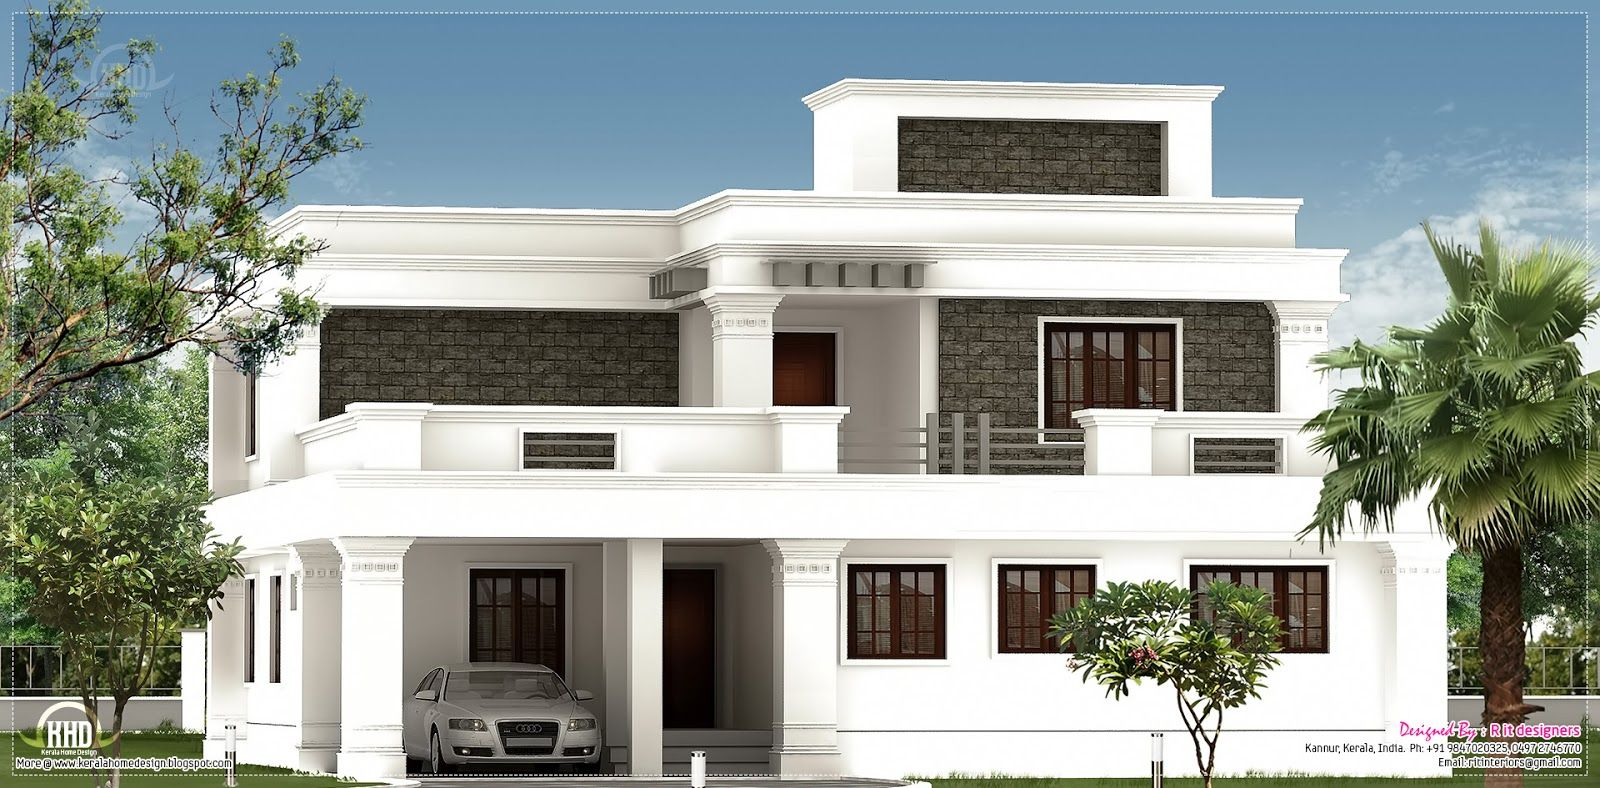 Flat roof homes designs flat roof villa exterior in 2400 for Indian home exterior design photos middle class